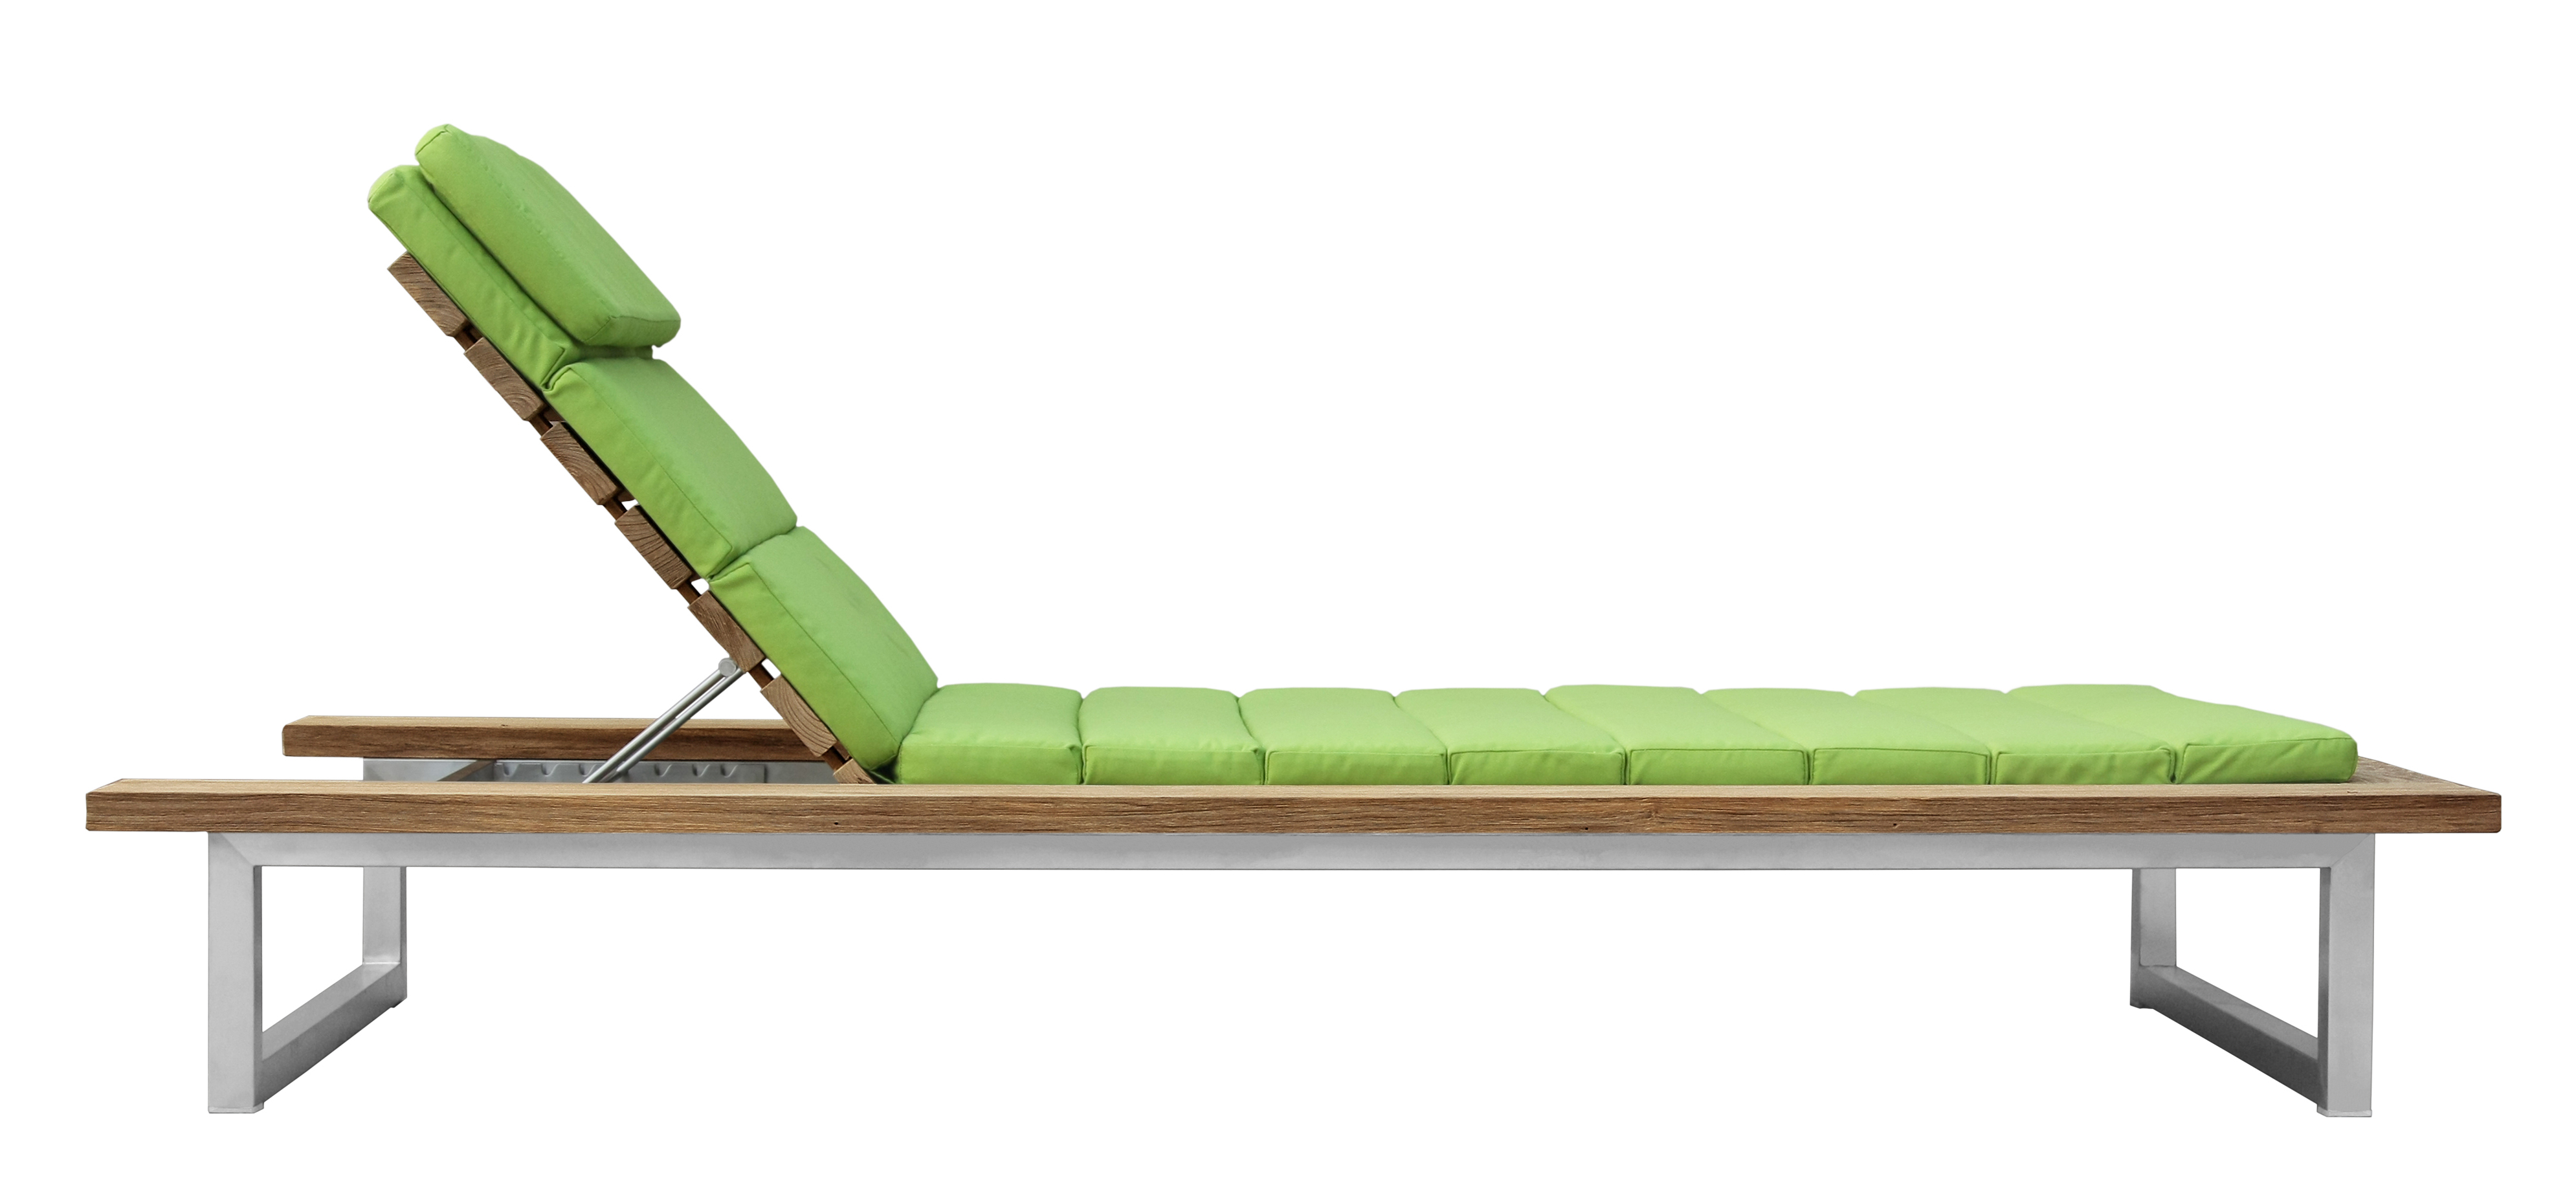 ICON Pool Lounger L Stamskin